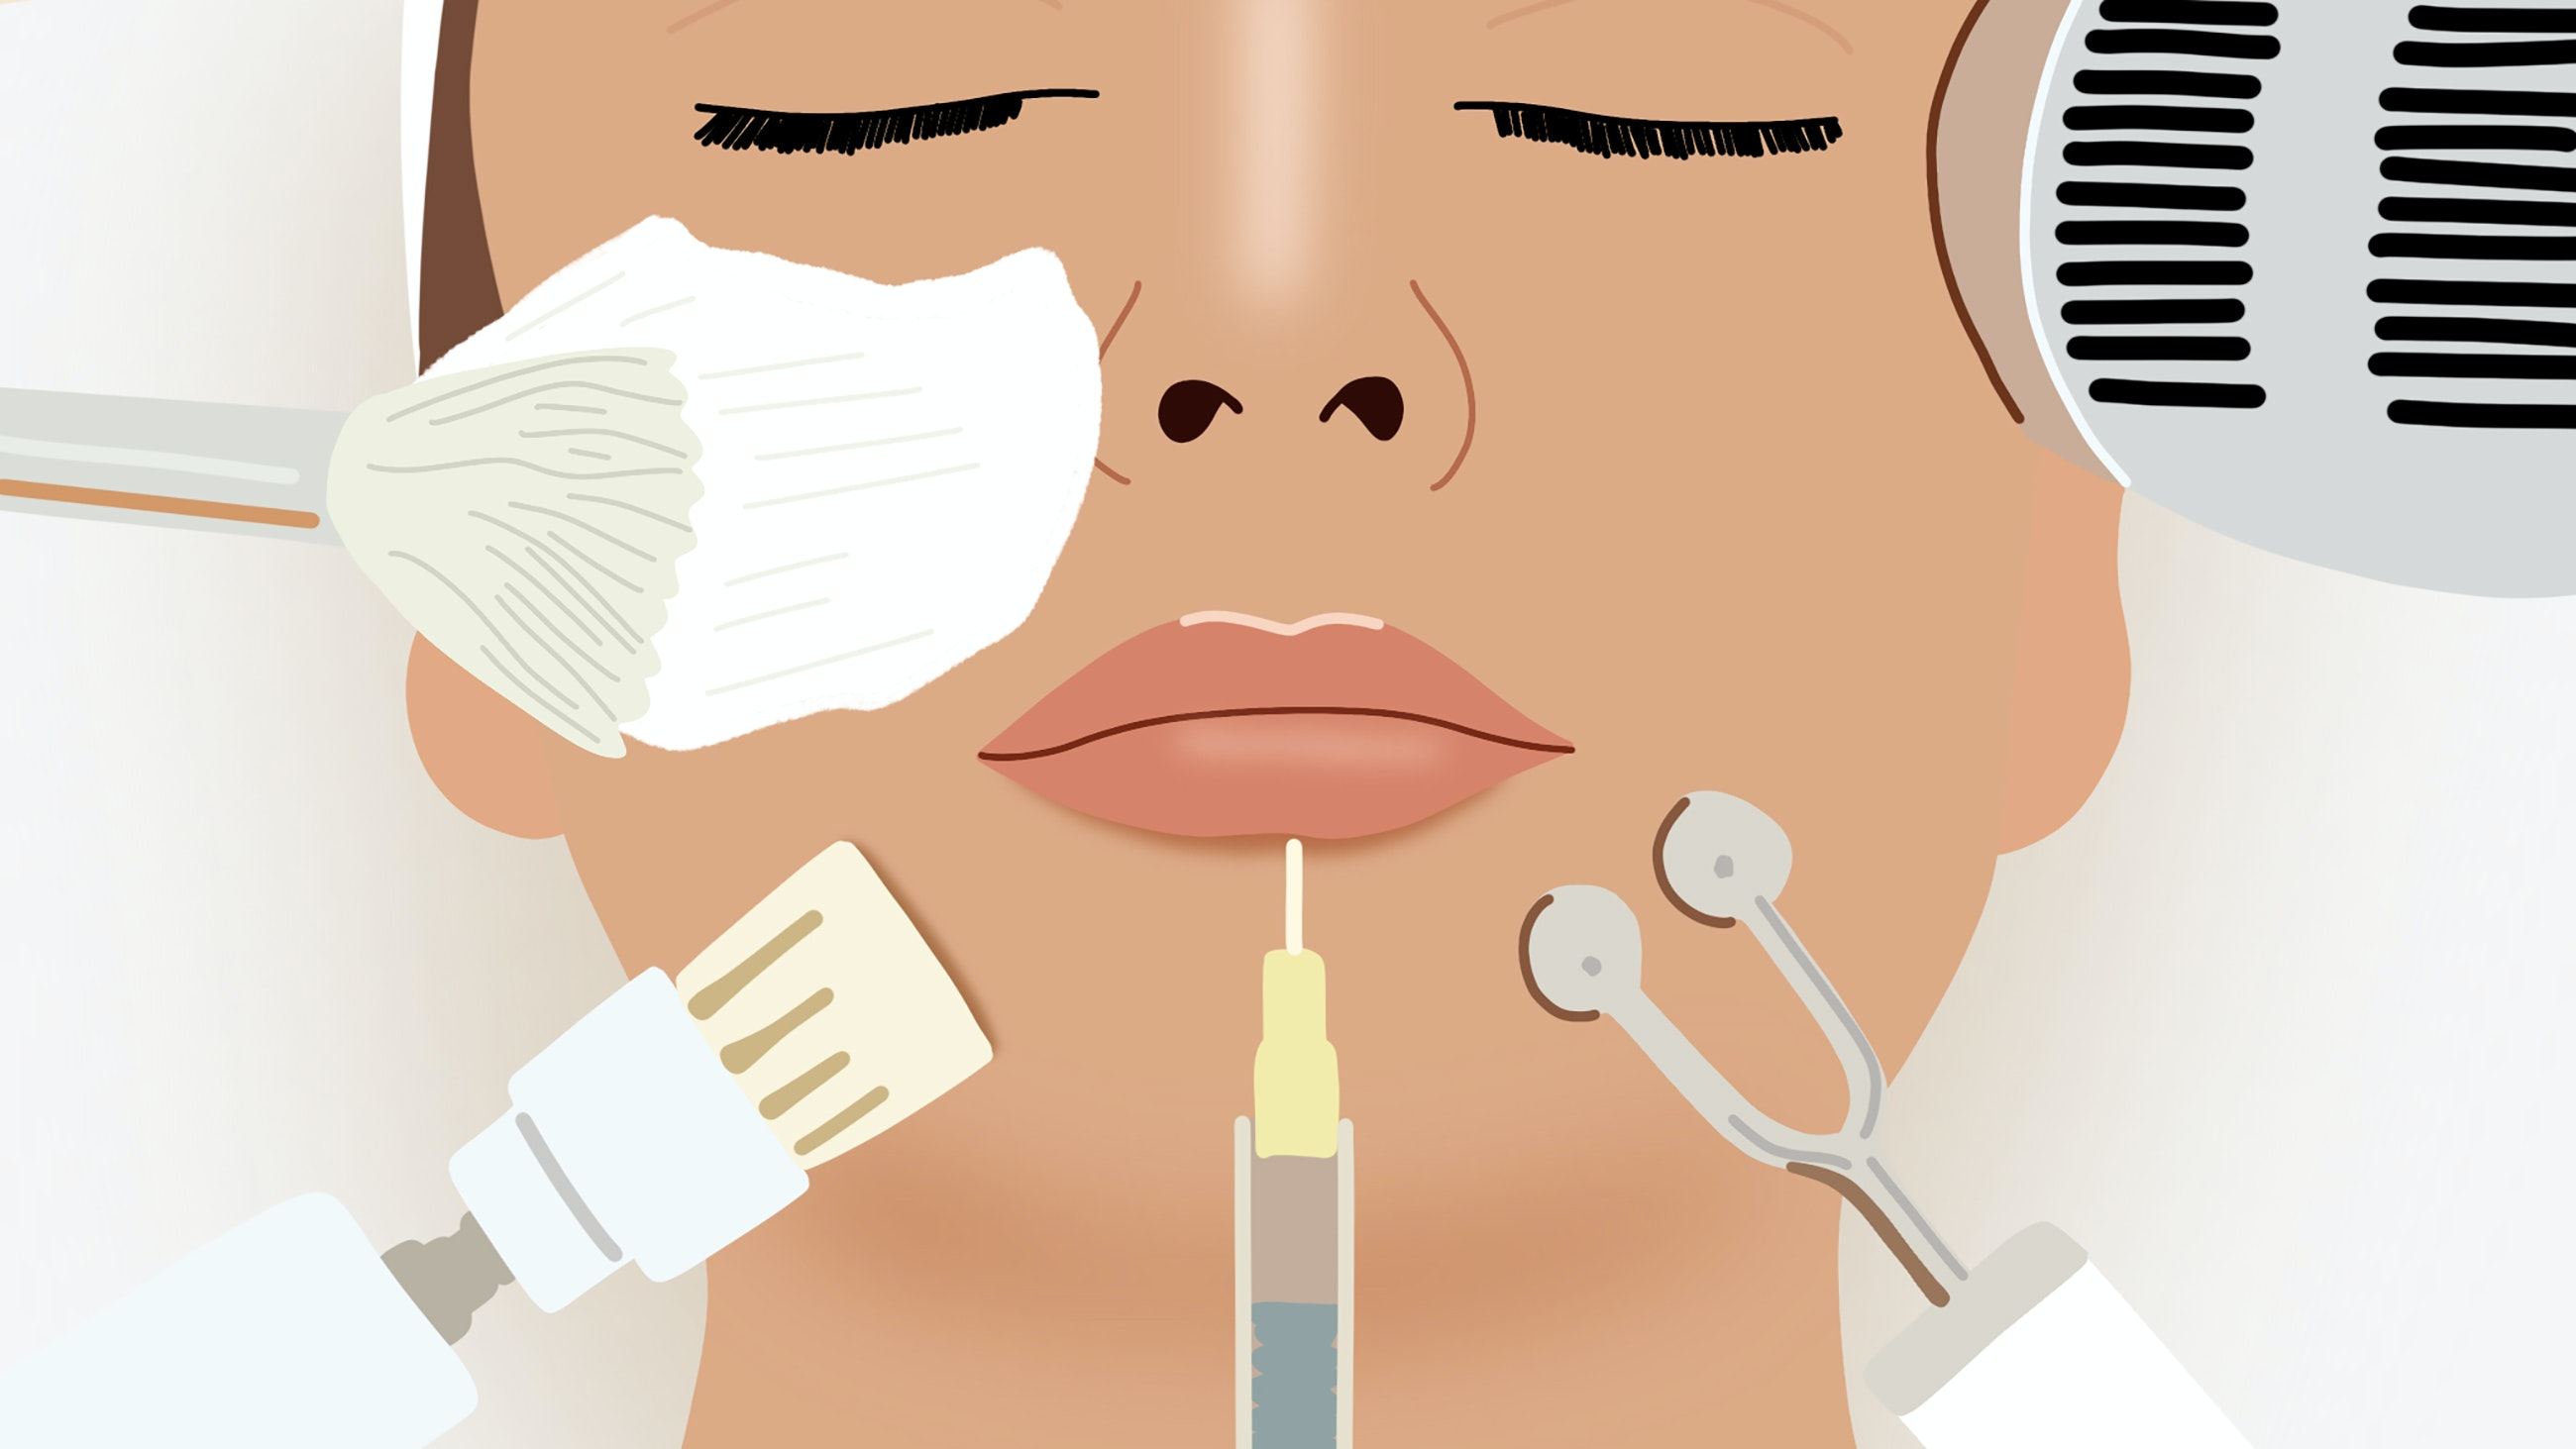 Illustration of women getting aesthetic treatments